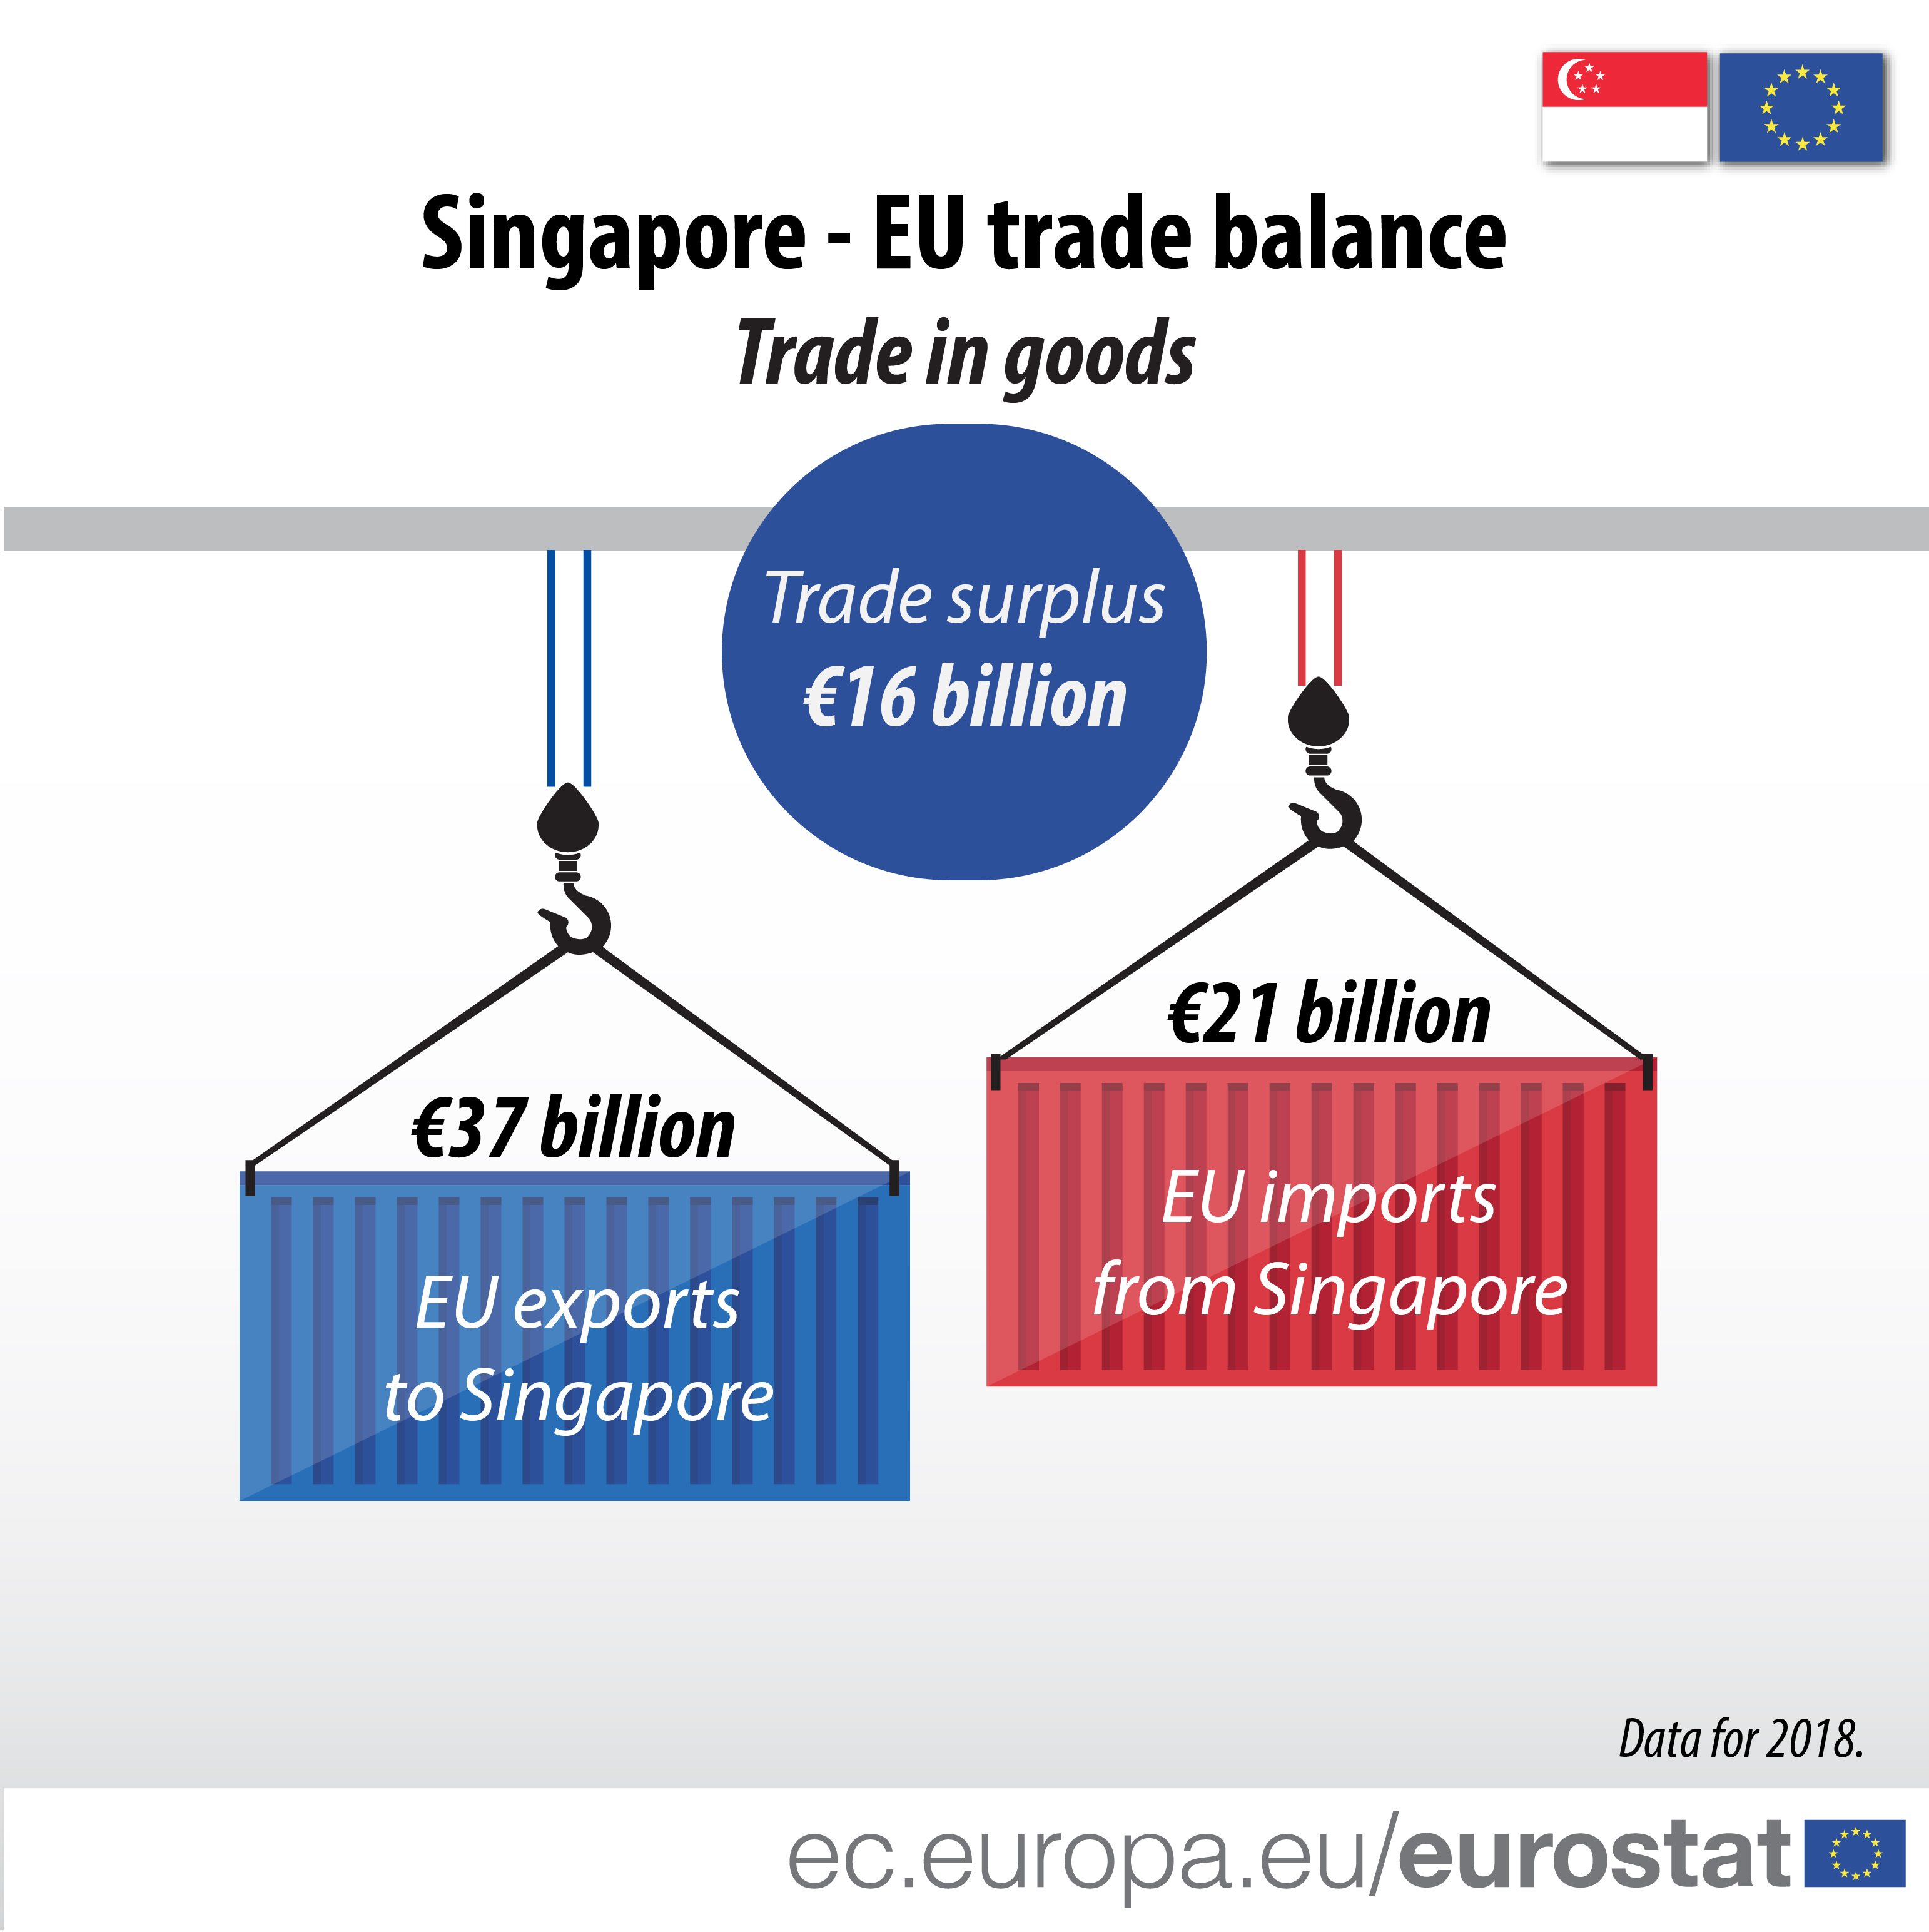 Infographic illustrating the trade balance between Singapore and the EU in 2018